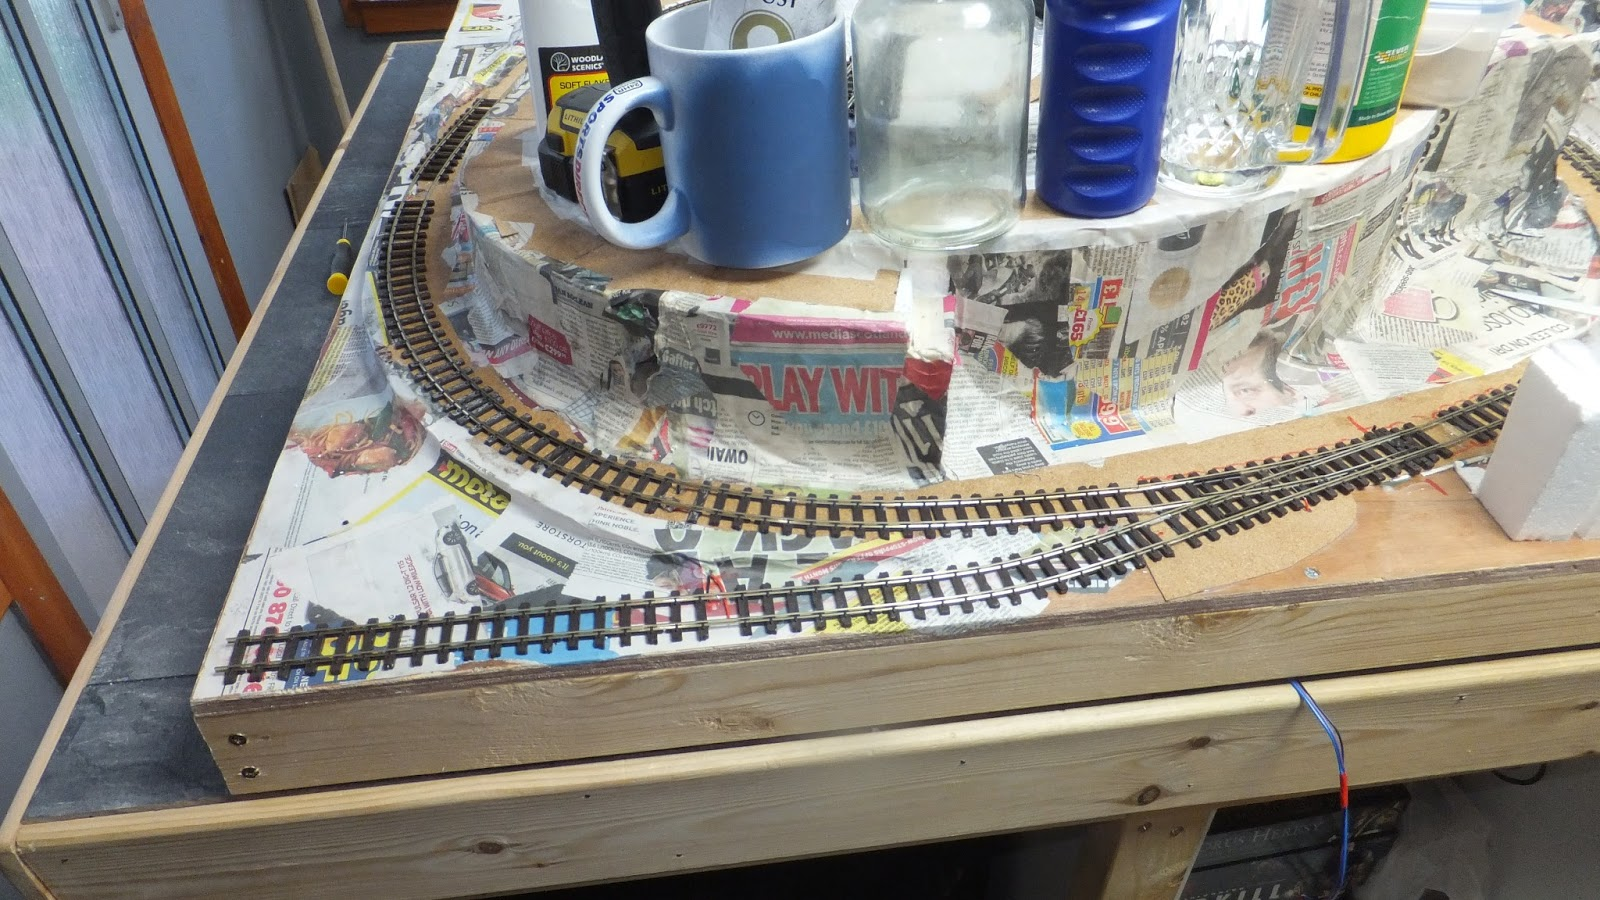 Lewis Lake Model Railroad Track Laying And Point Wiring Well A Lot Has Been Happening Over The Past Few Weeks I Have Of Papermashie Base On Now Finally Started To Lay Fit Points